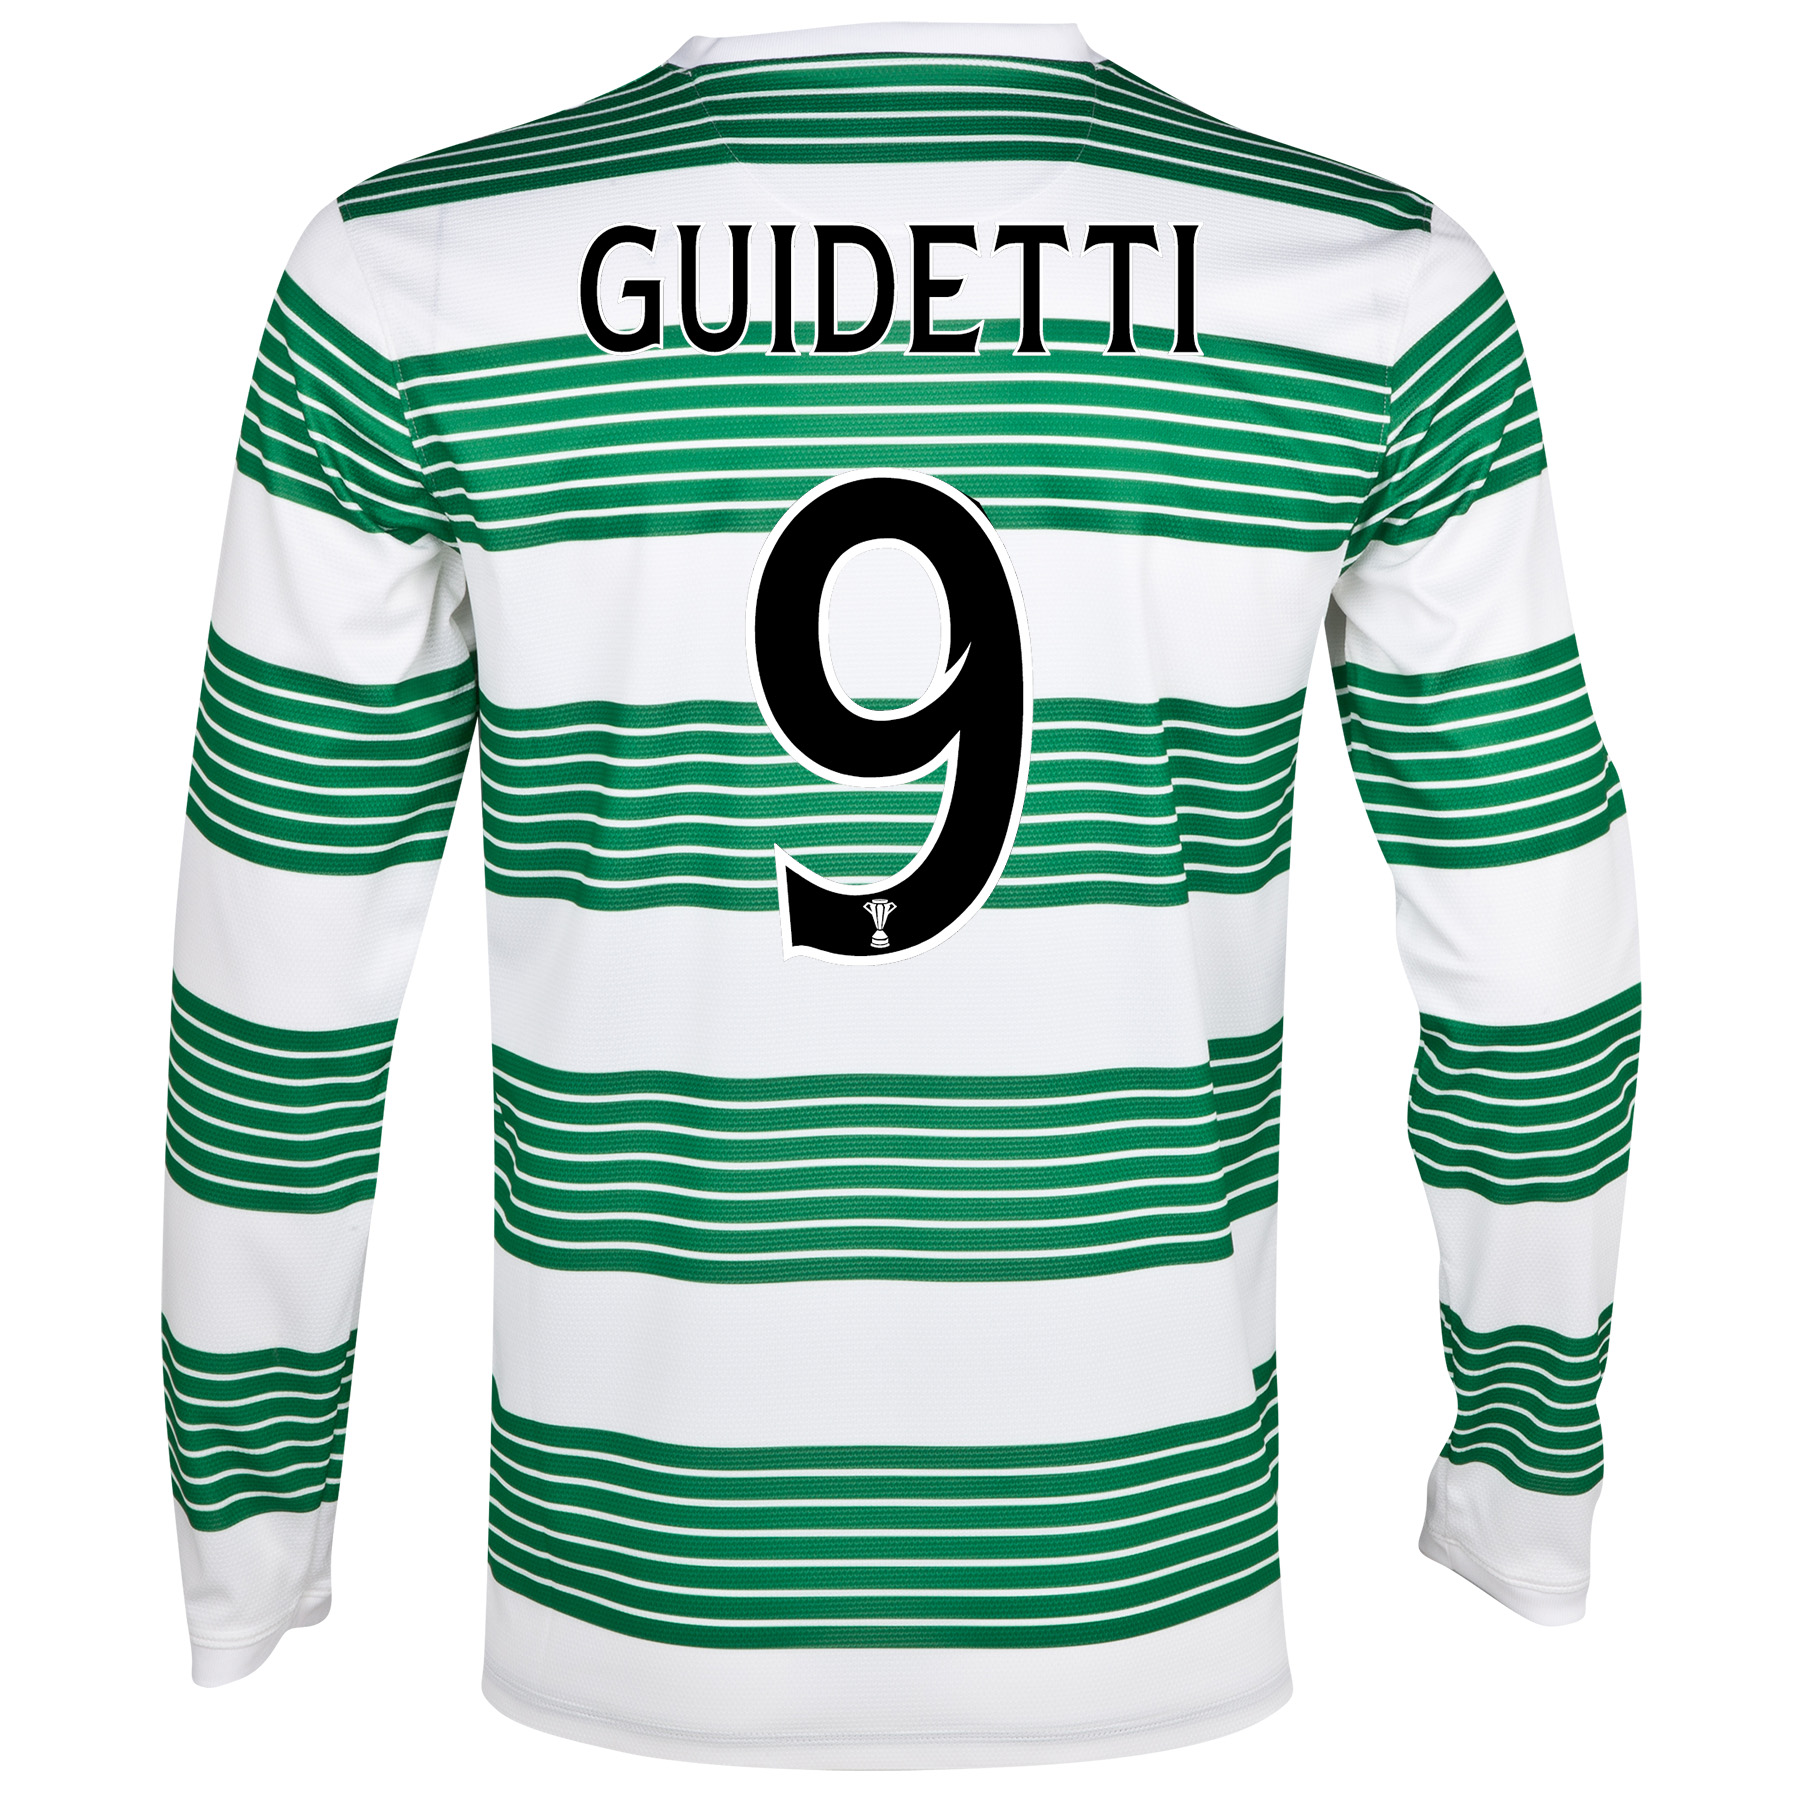 Celtic Home Shirt 2013/15 - L/S- Unsponsored with Guidetti 9 printing